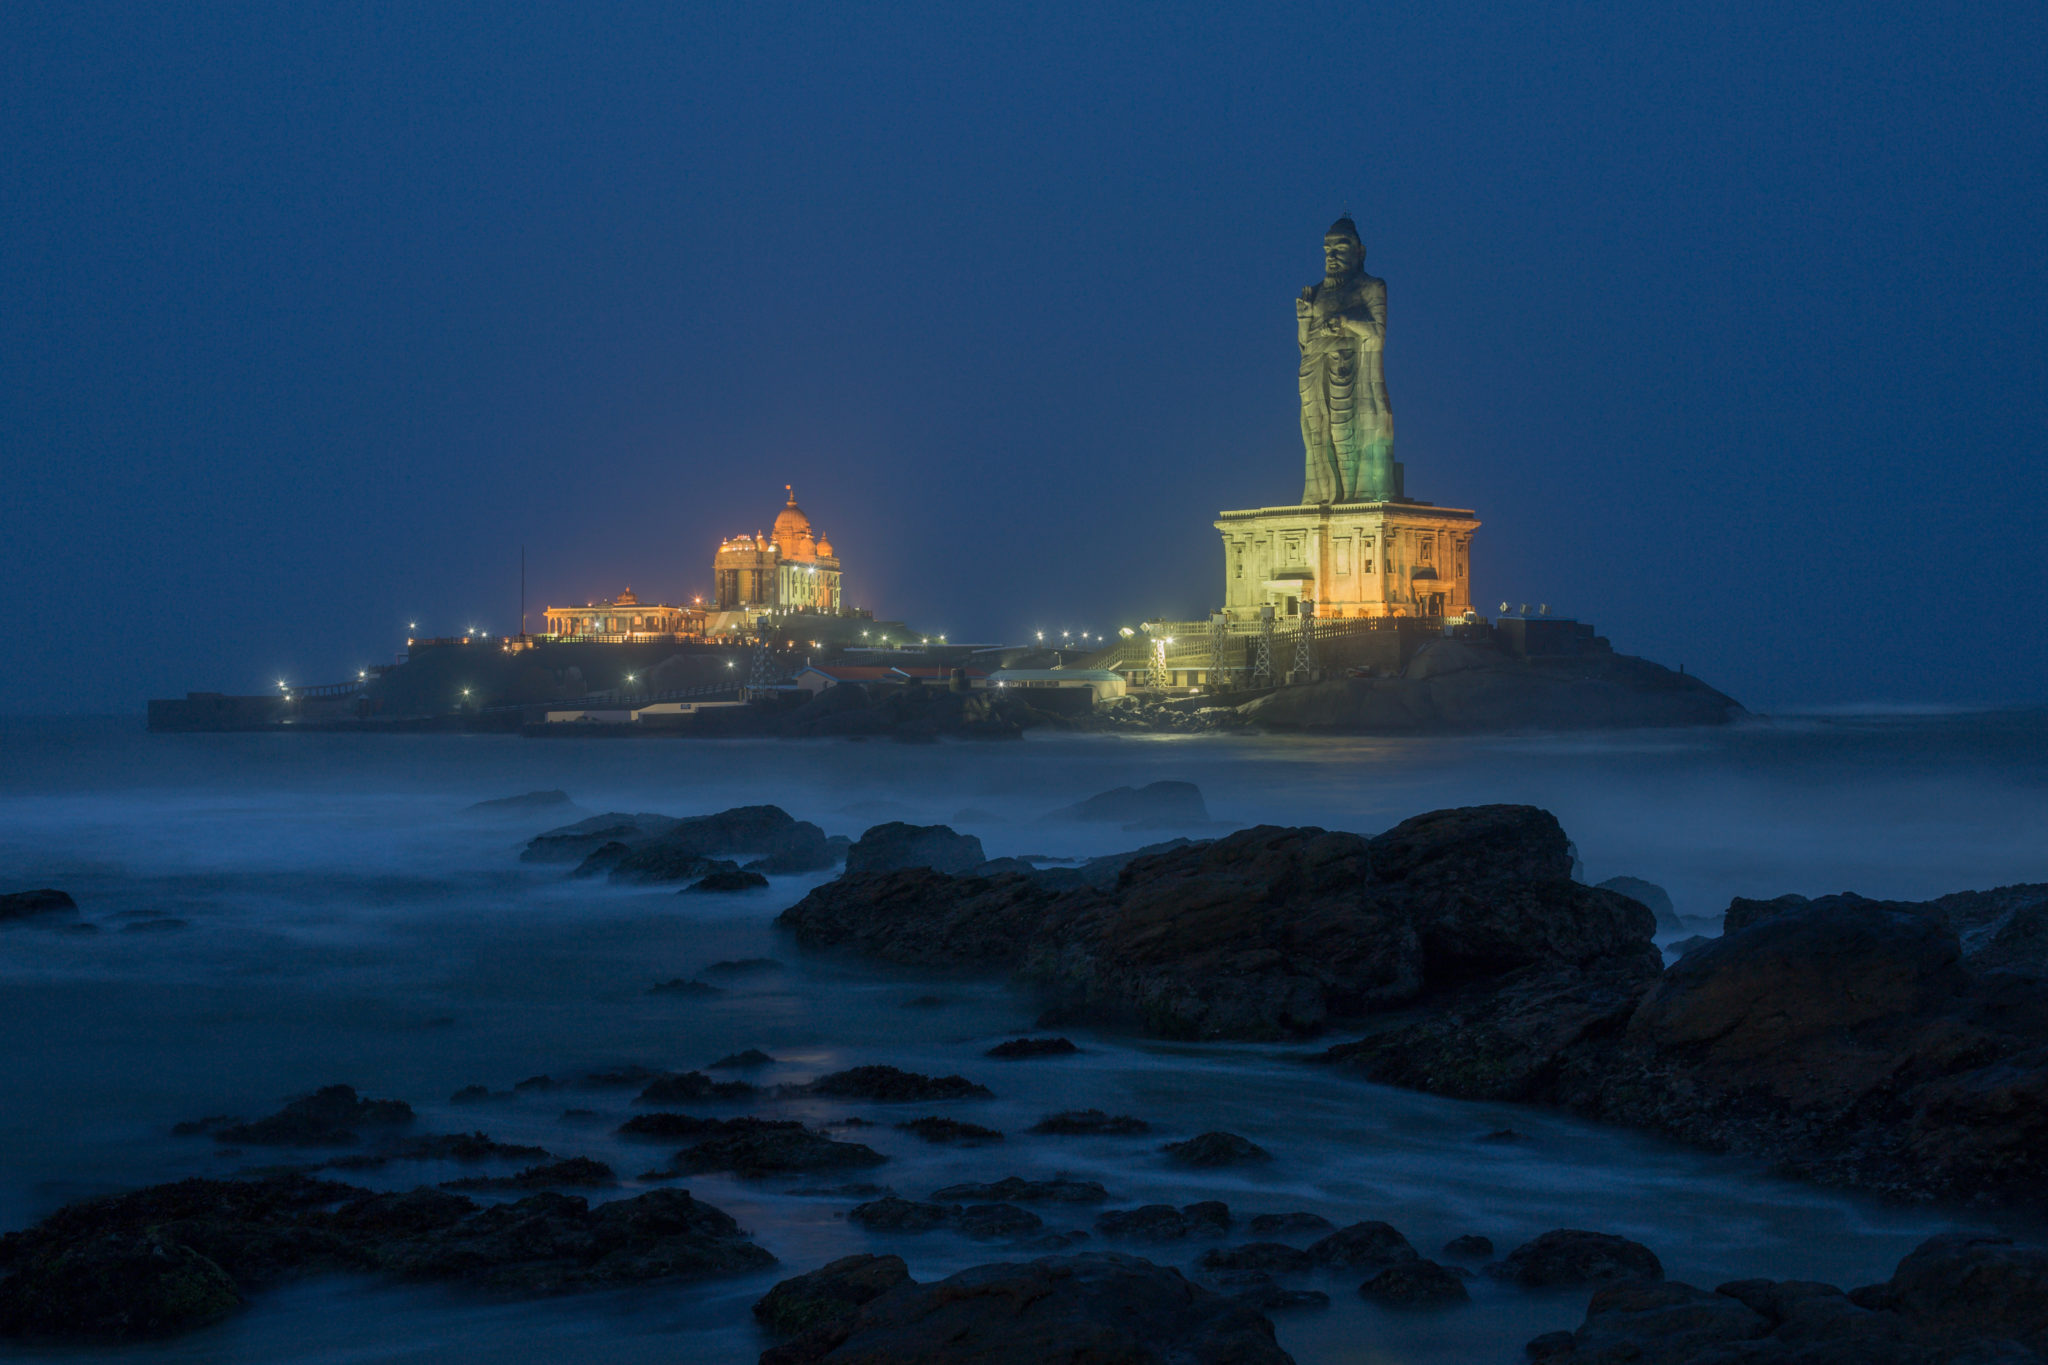 Kanyakumari in the night